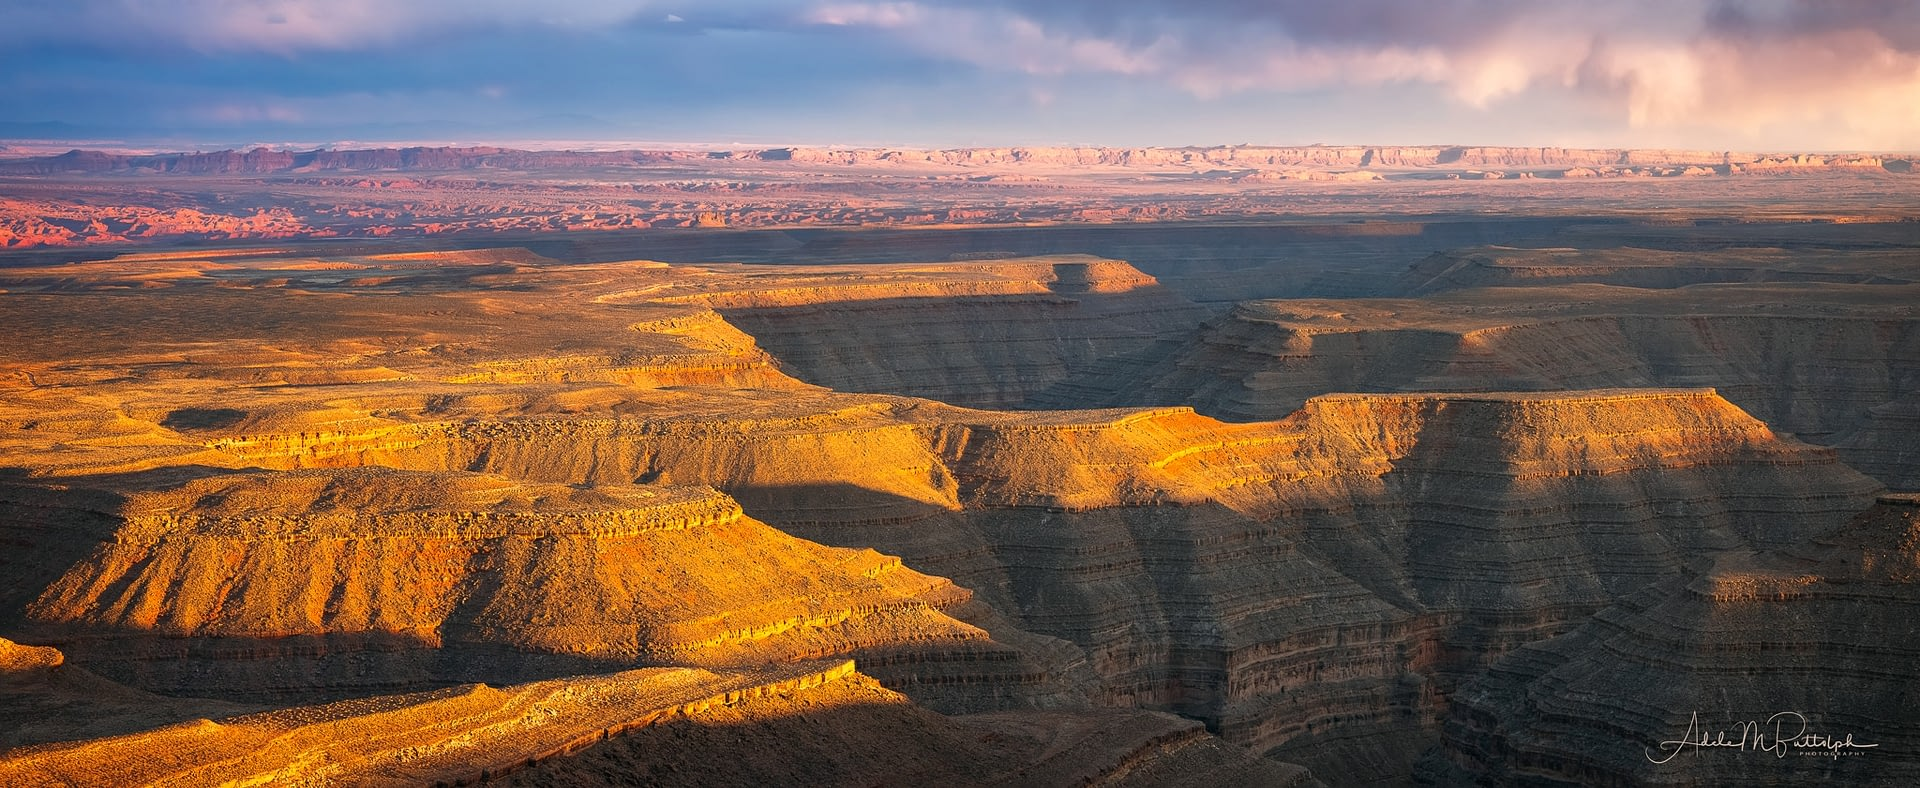 San Juan River Canyons from Muley Point, Utah